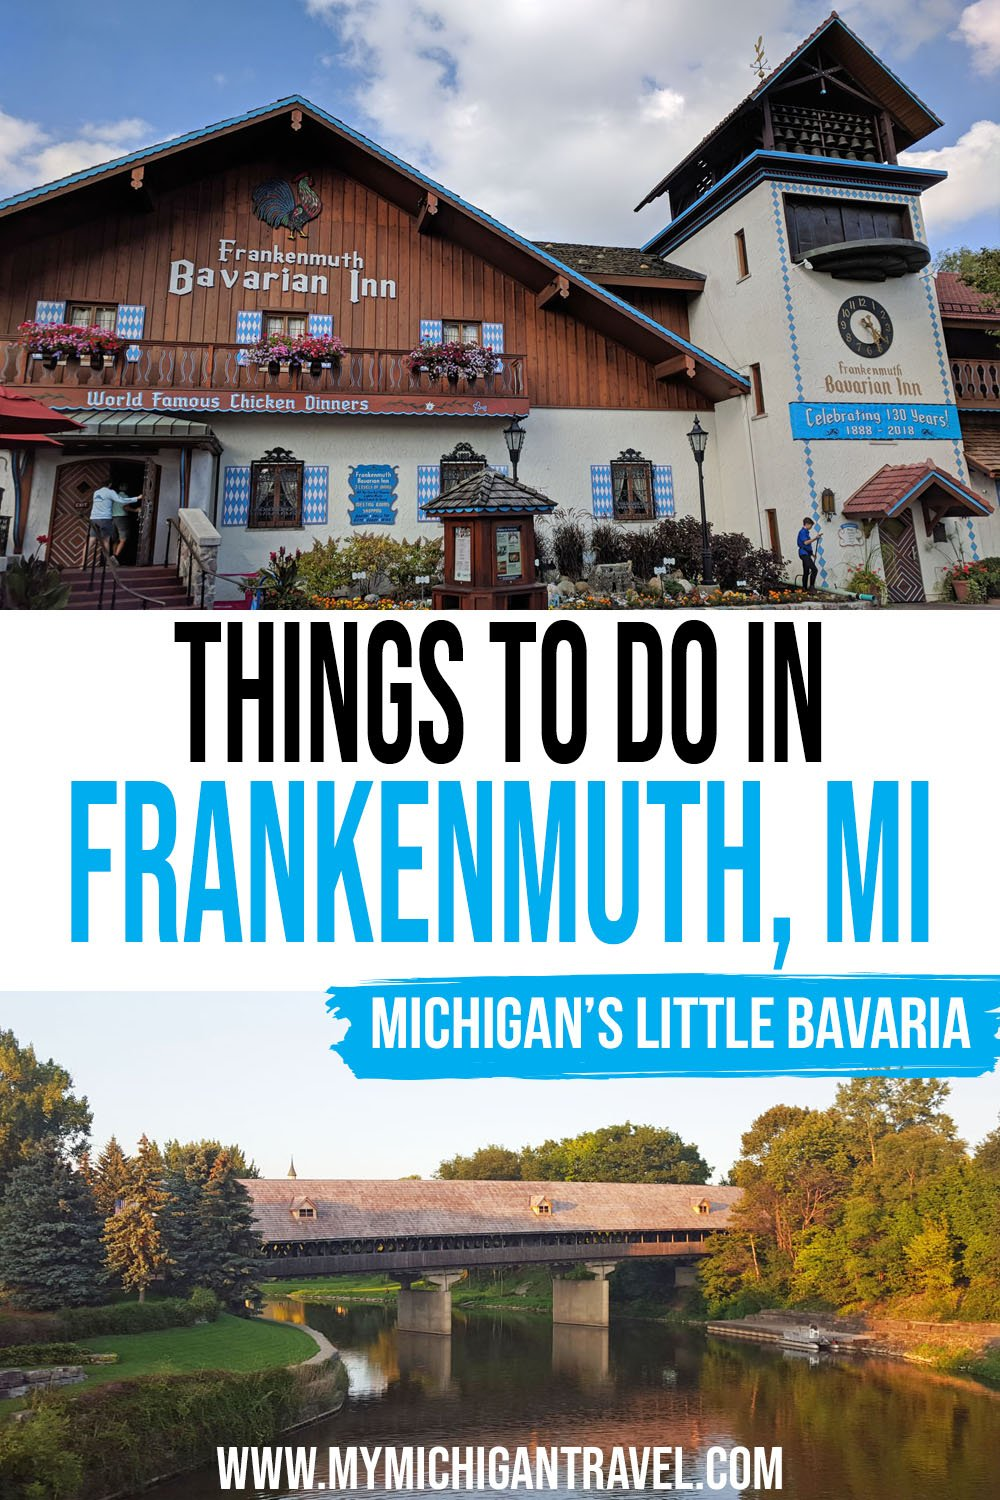 """Photo collage of a restaurant built with traditional Bavarian architecture and a covered wooden bridge spanning a calm river with text overlay reading, """"Things to do in Frankenmuth, MI - Michigan's Little Bavaria"""""""